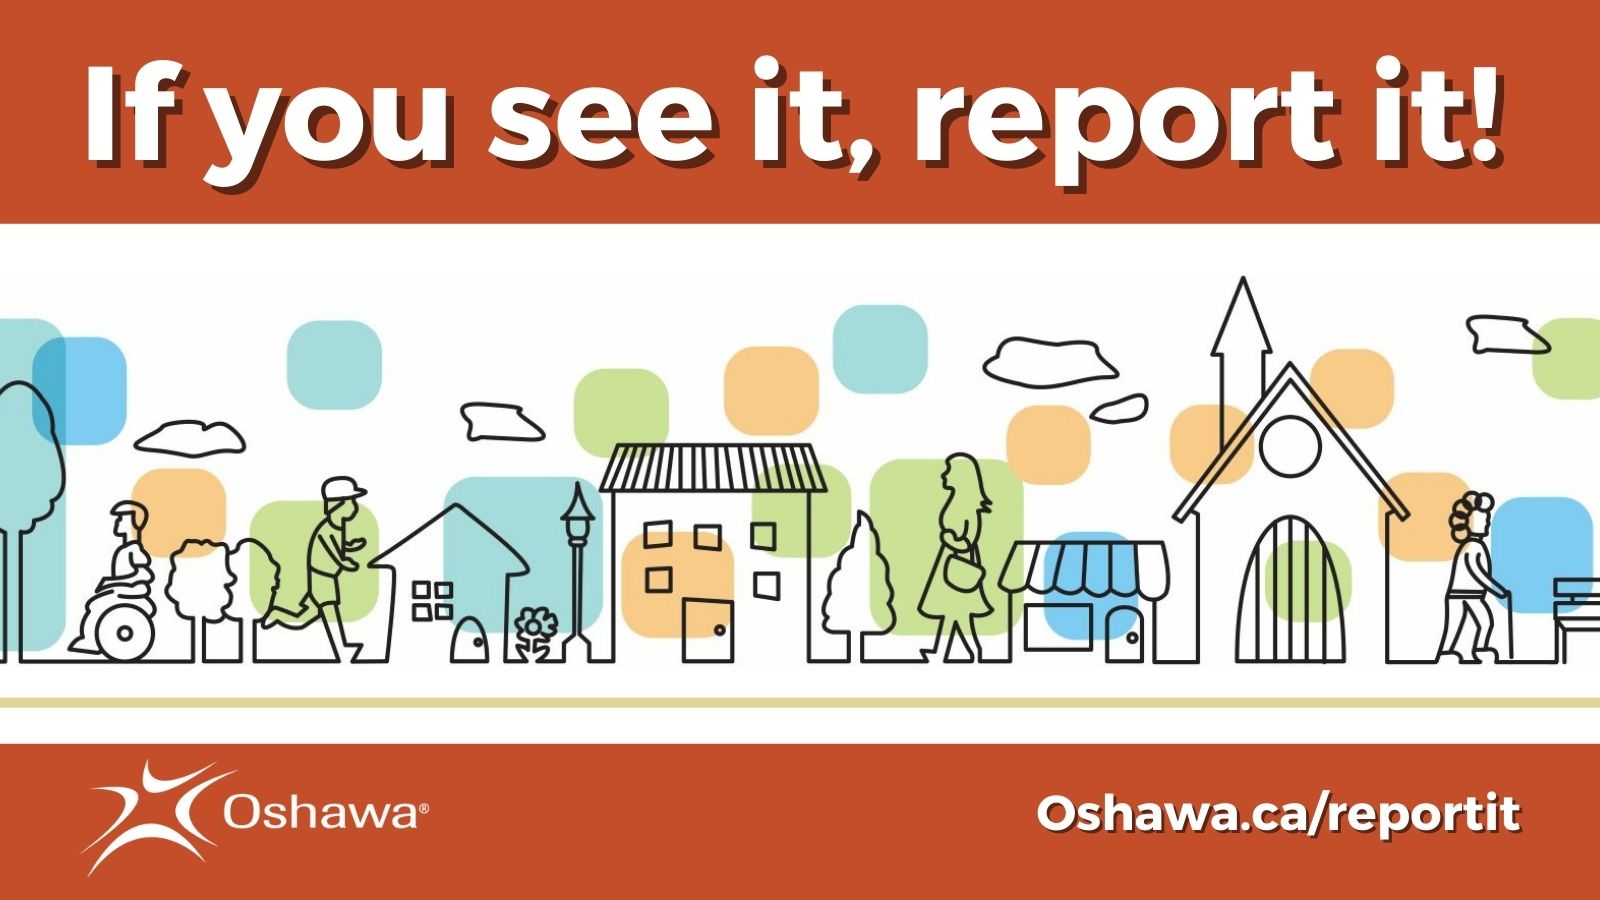 If you see it, report it!